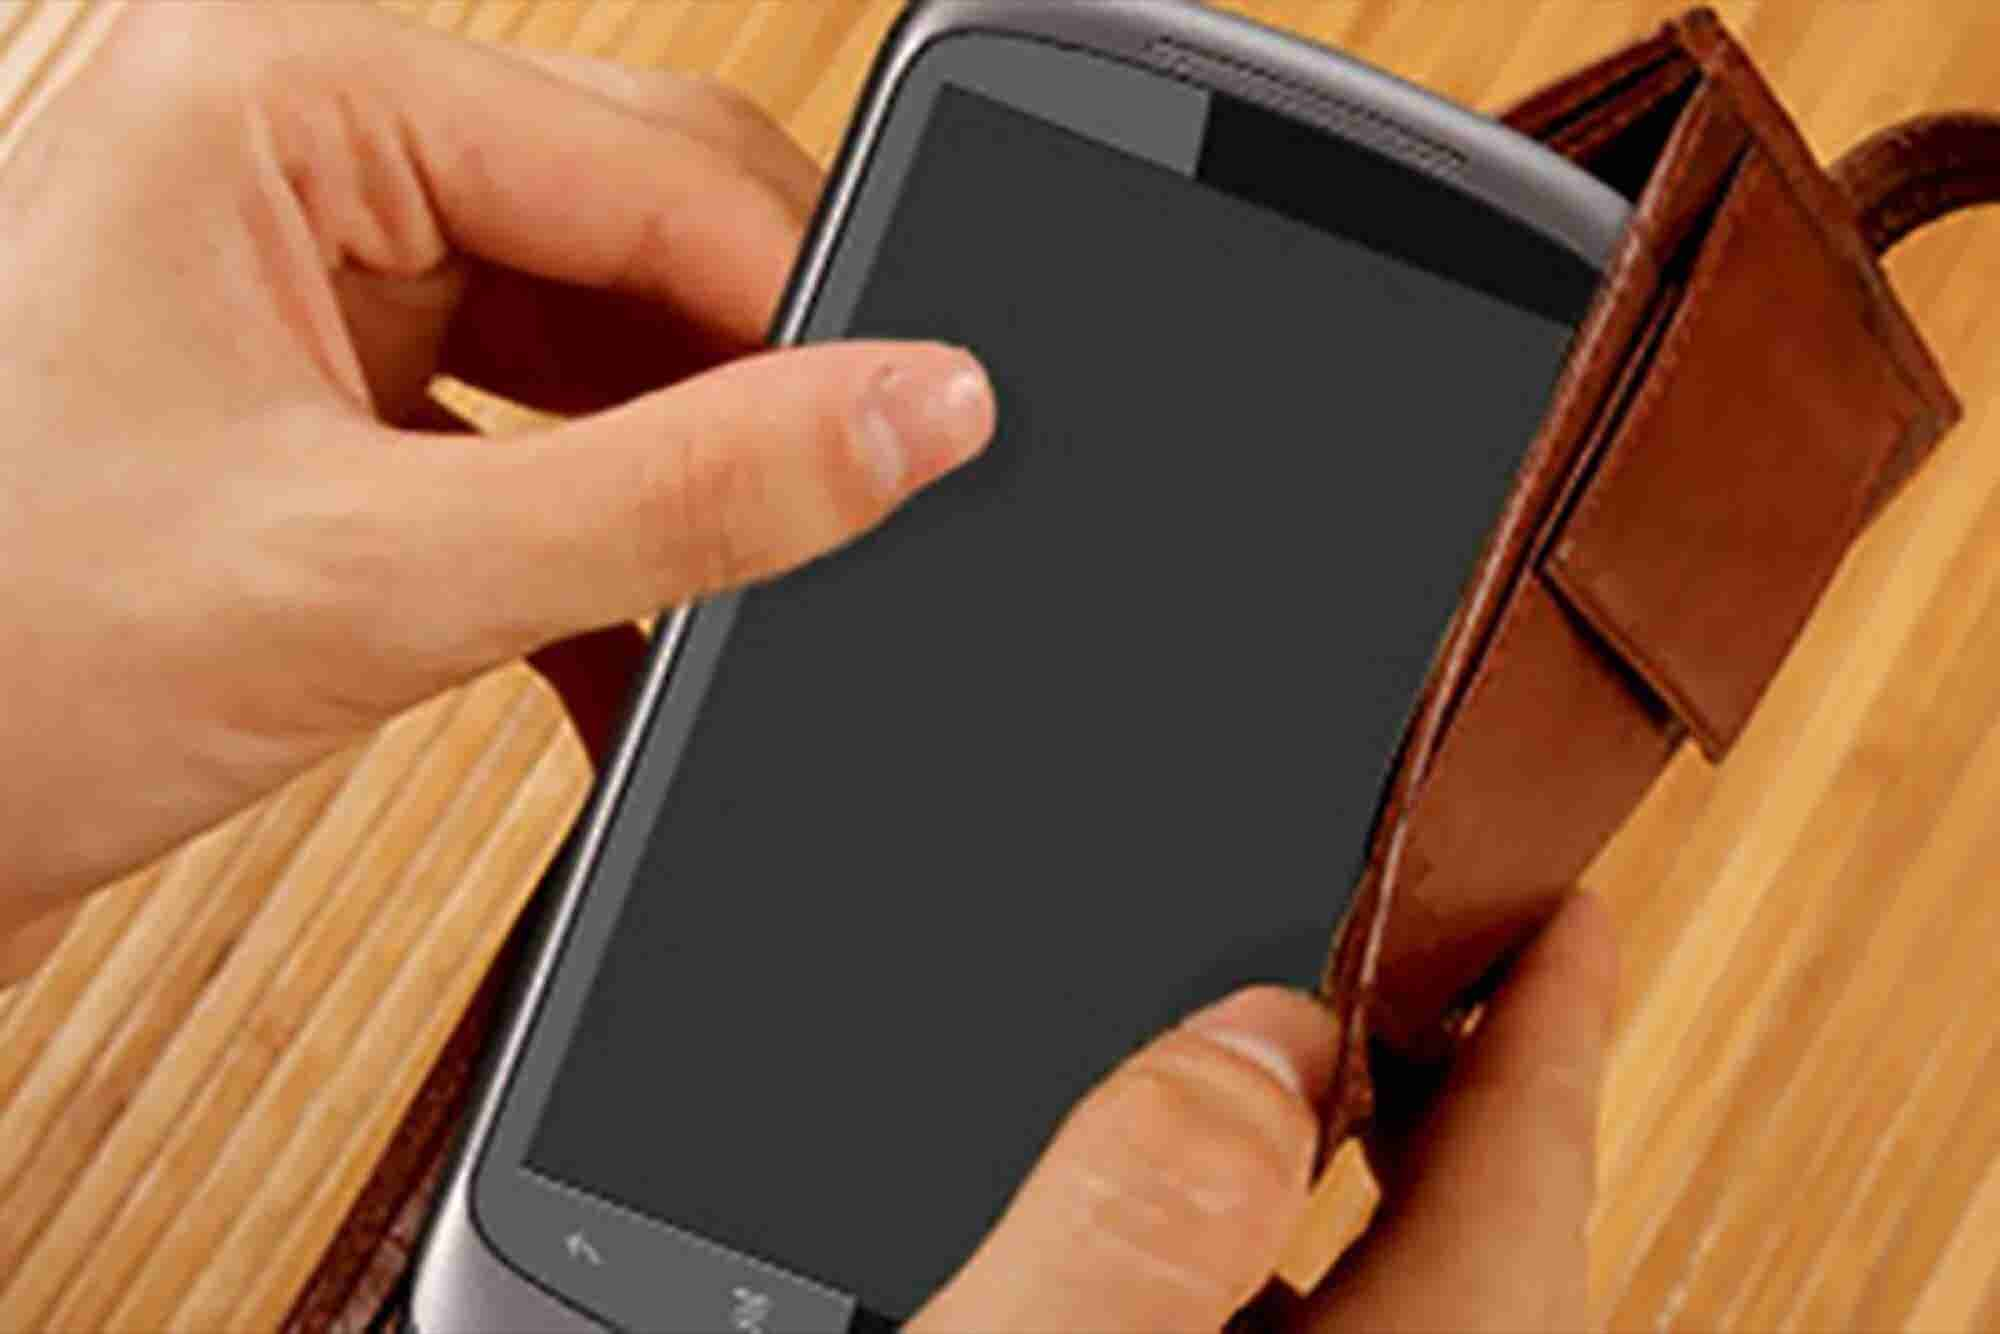 How 'NFC' and Mobile Wallets Will Change the Way Retailers Do Business